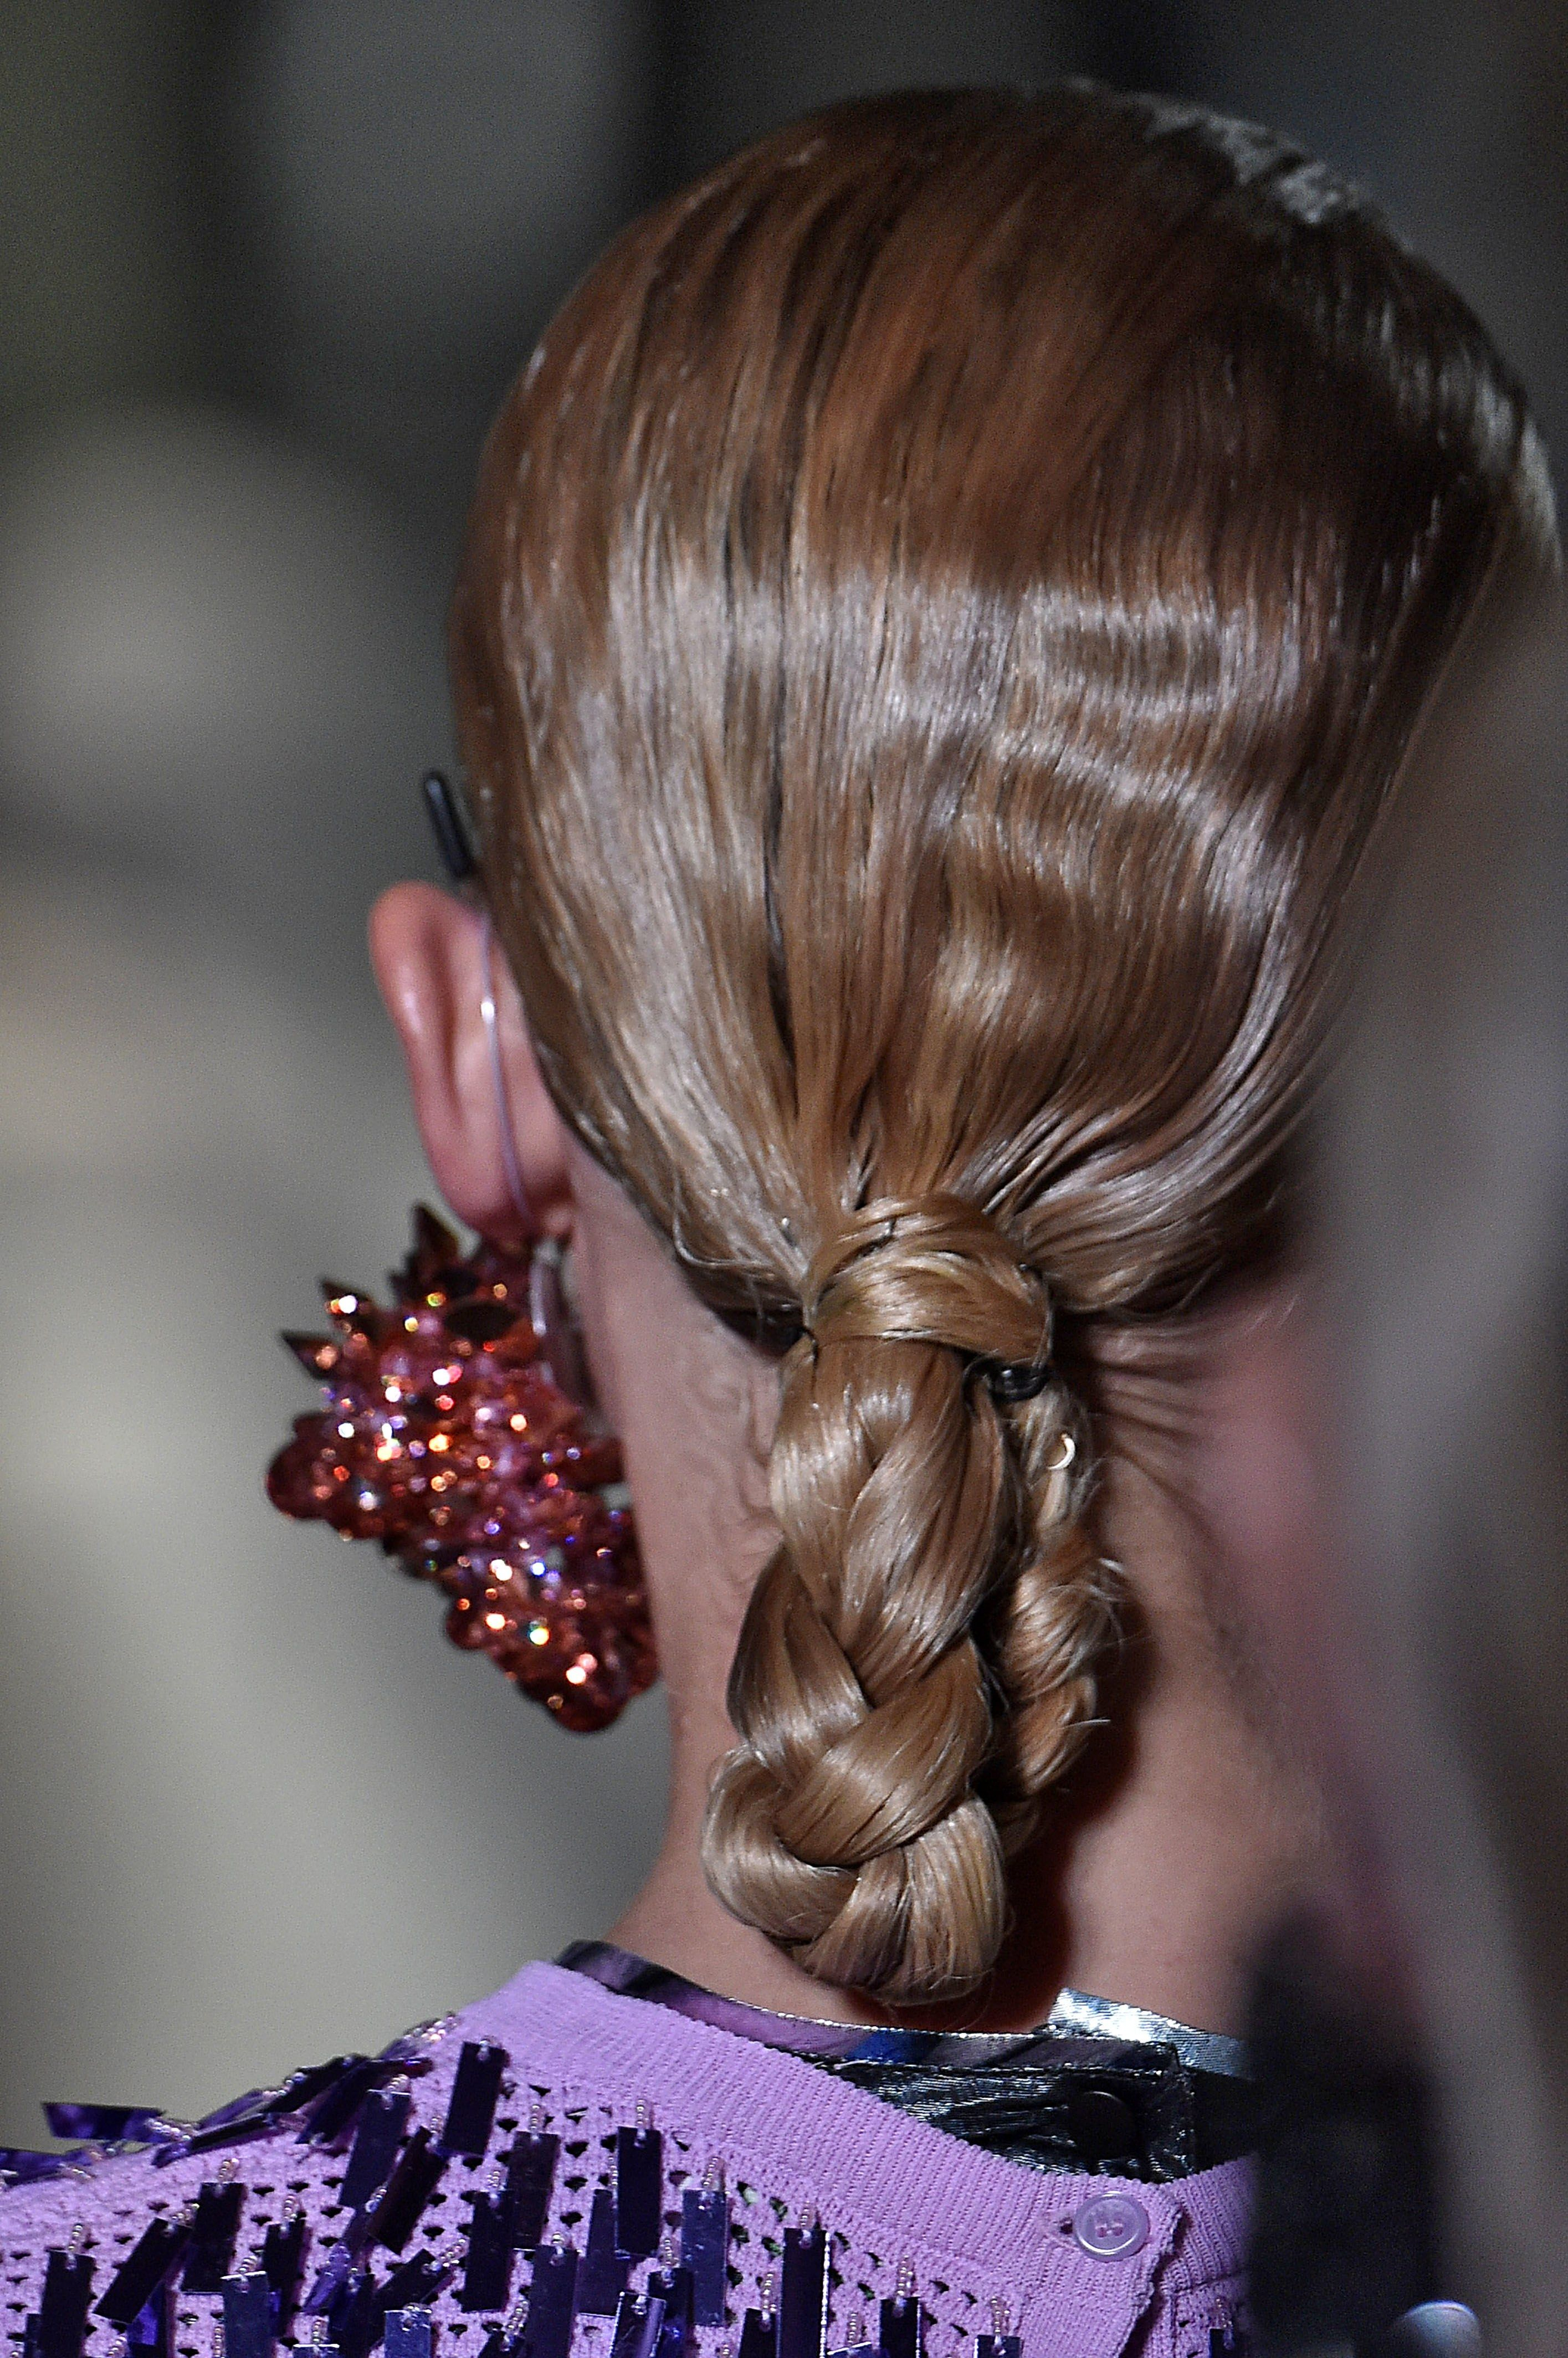 The Best Statement Earrings and Hairstyles to Wear to a Holiday